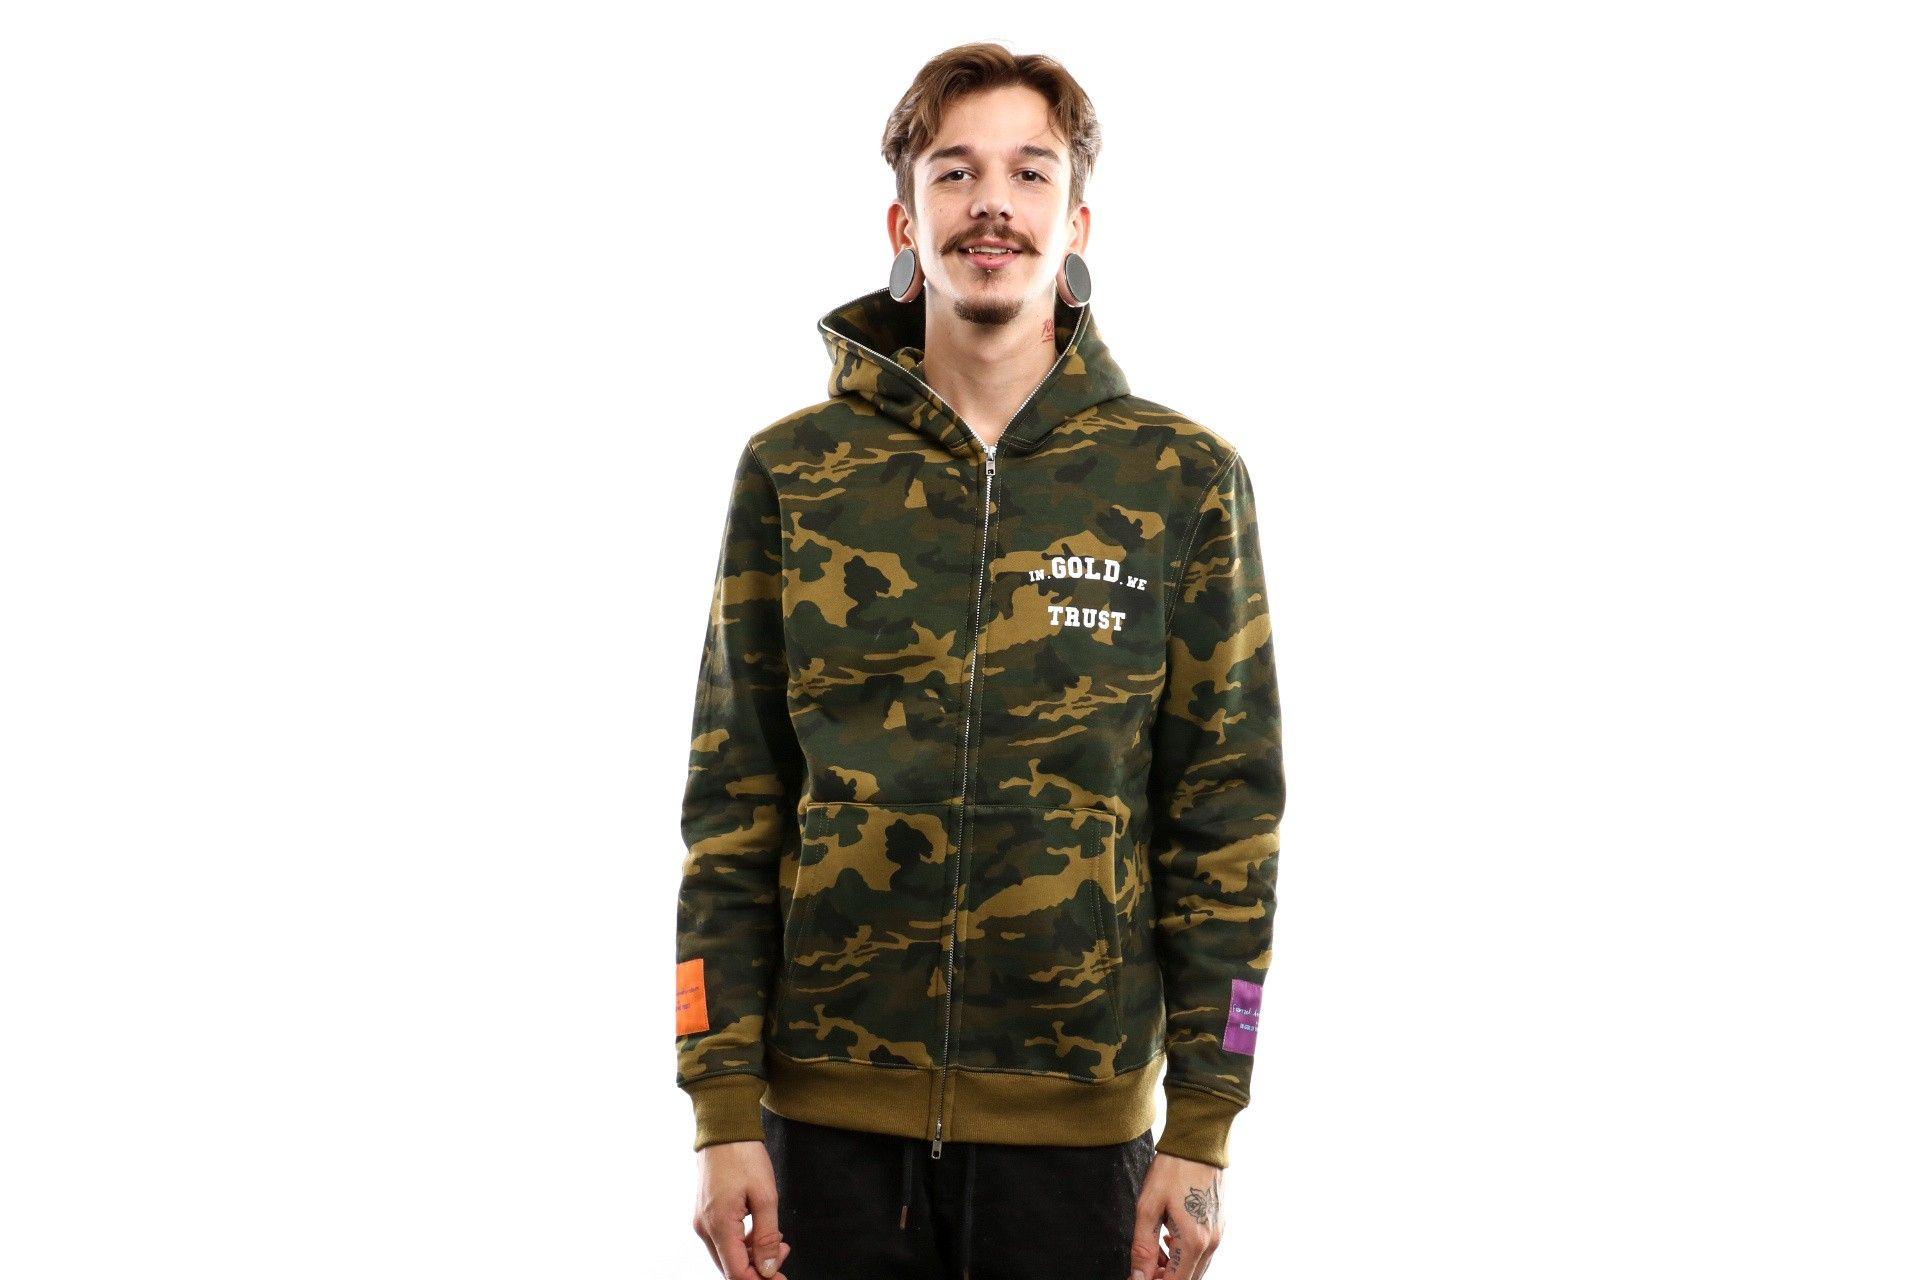 Afbeelding van In Gold We Trust Hooded Zip The Wu Army Igwtwk0011030125Hw